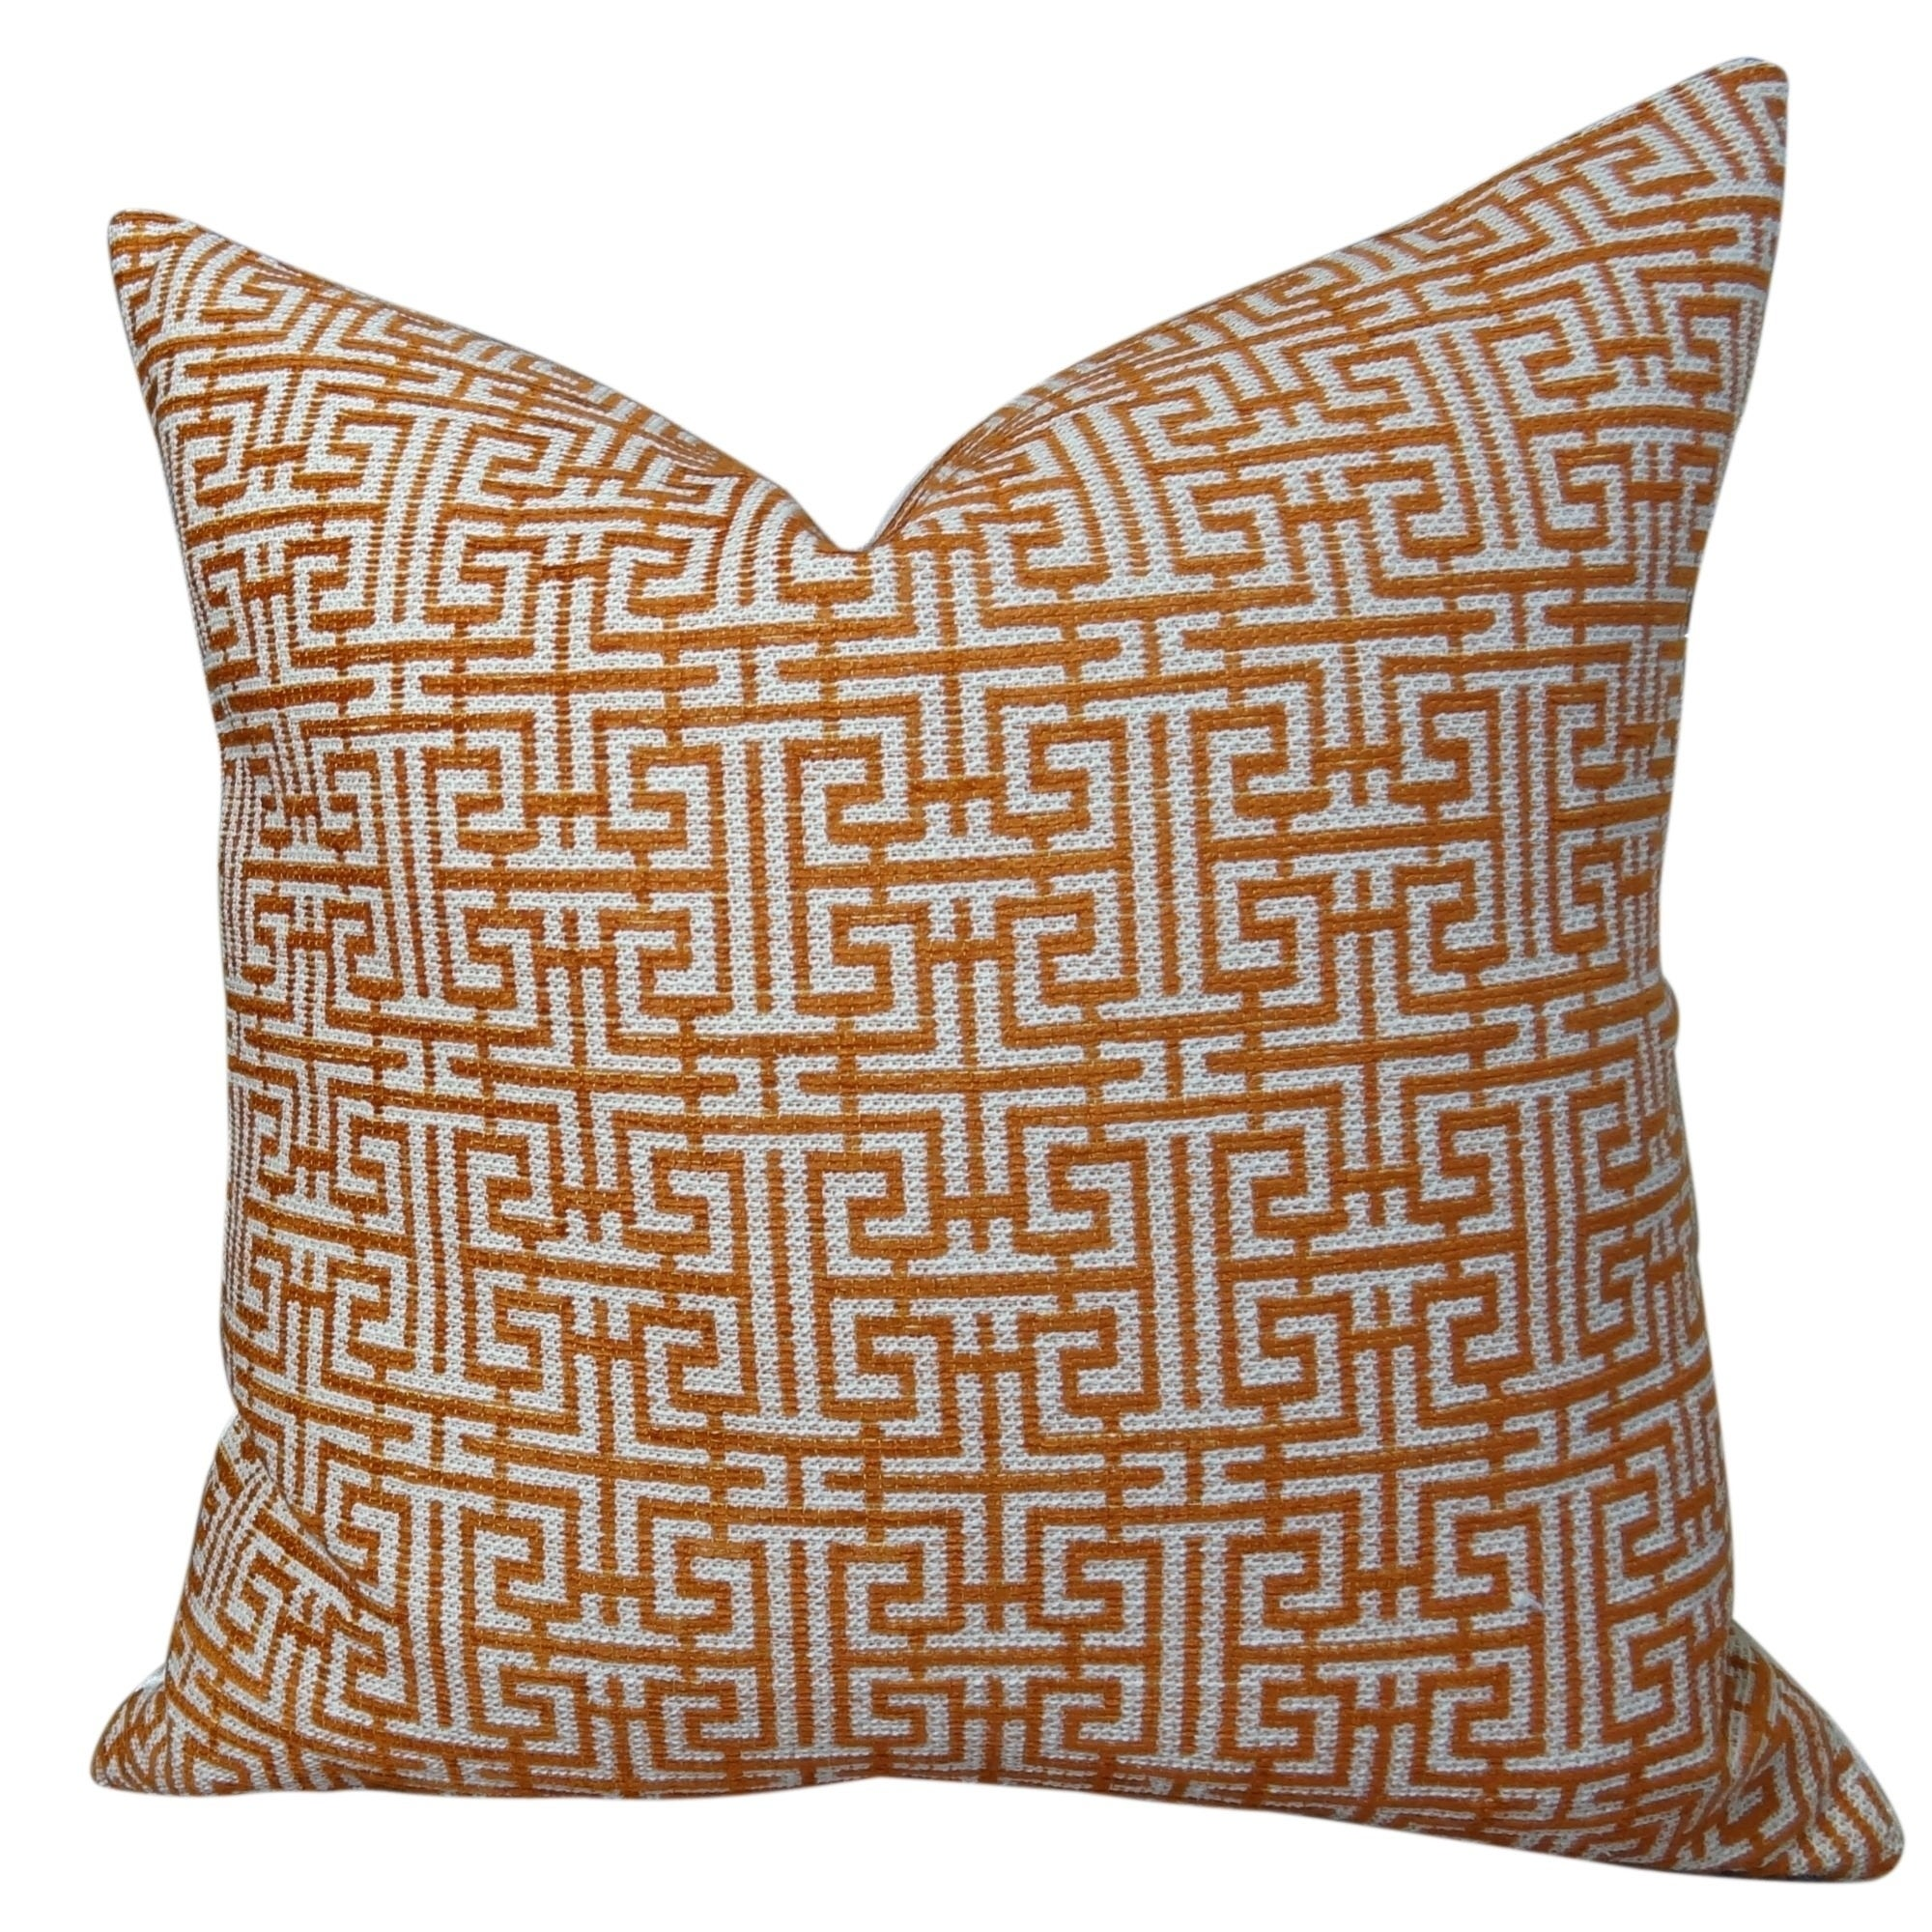 tips pillow lumbar cushion by tufted inspiration home custom decor best office depot pillows orange car chair for support outdoor